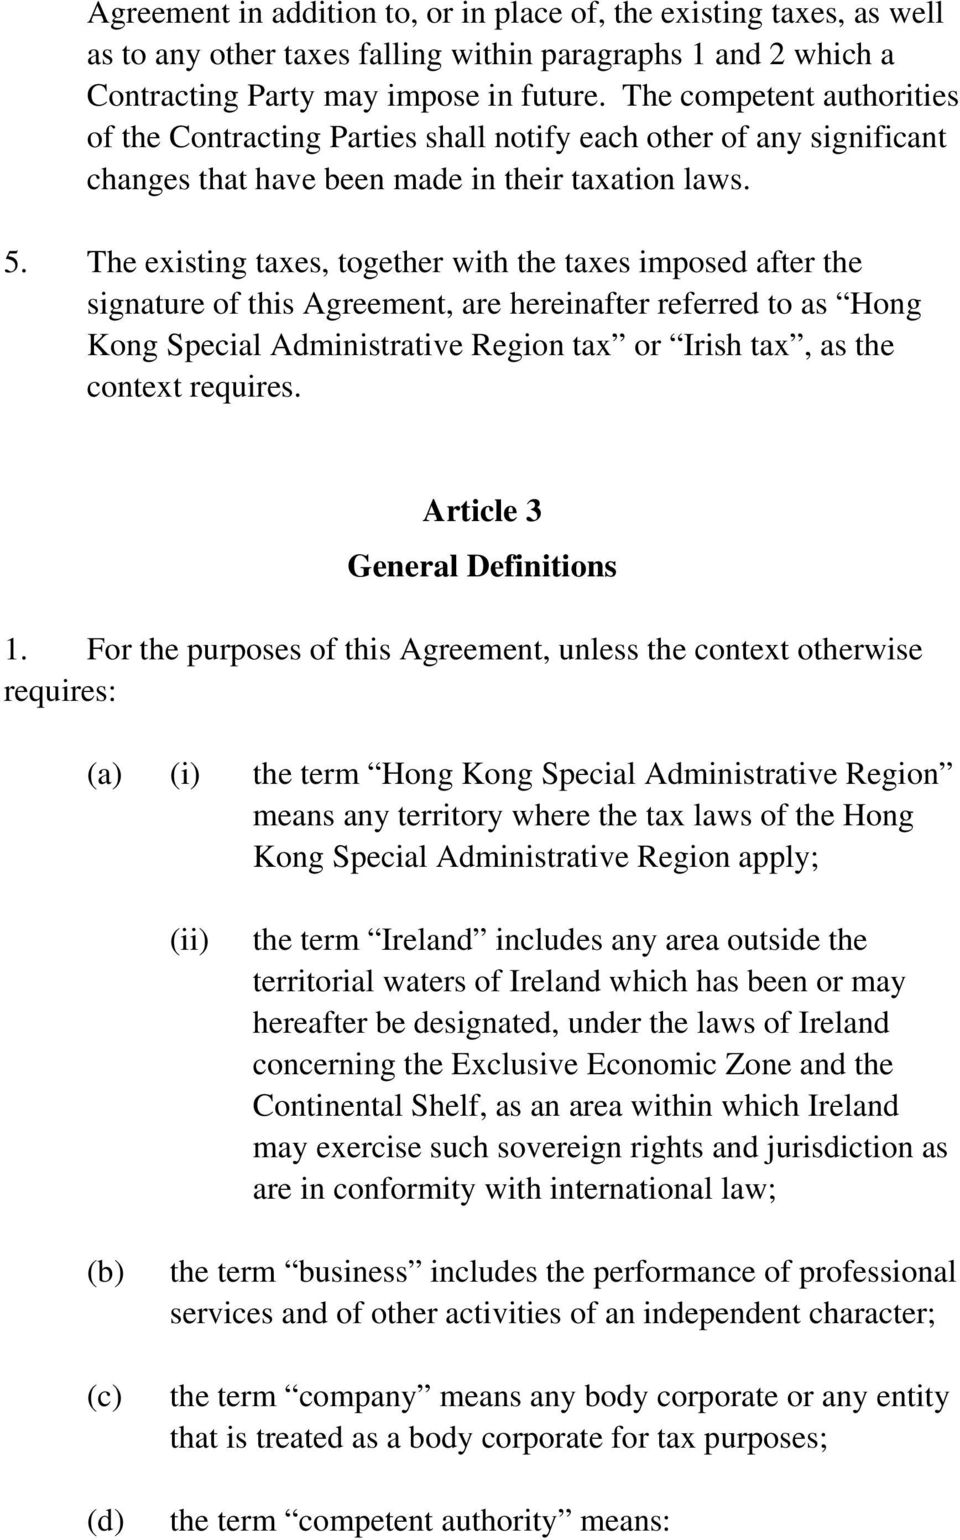 The existing taxes, together with the taxes imposed after the signature of this Agreement, are hereinafter referred to as Hong Kong Special Administrative Region tax or Irish tax, as the context